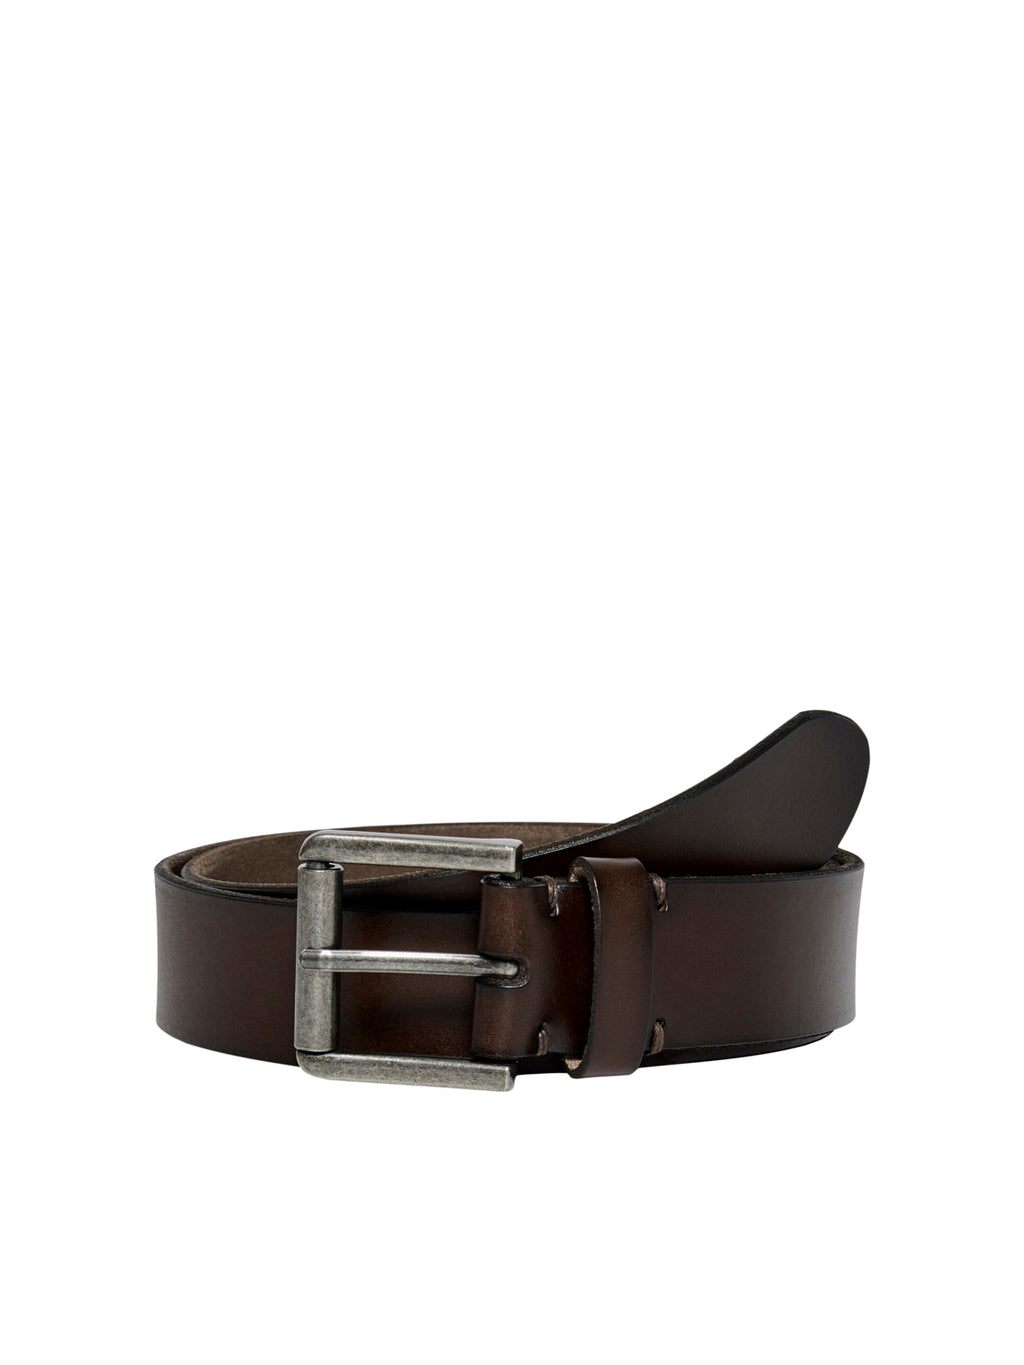 Carm Leather Belte - Brown Stone